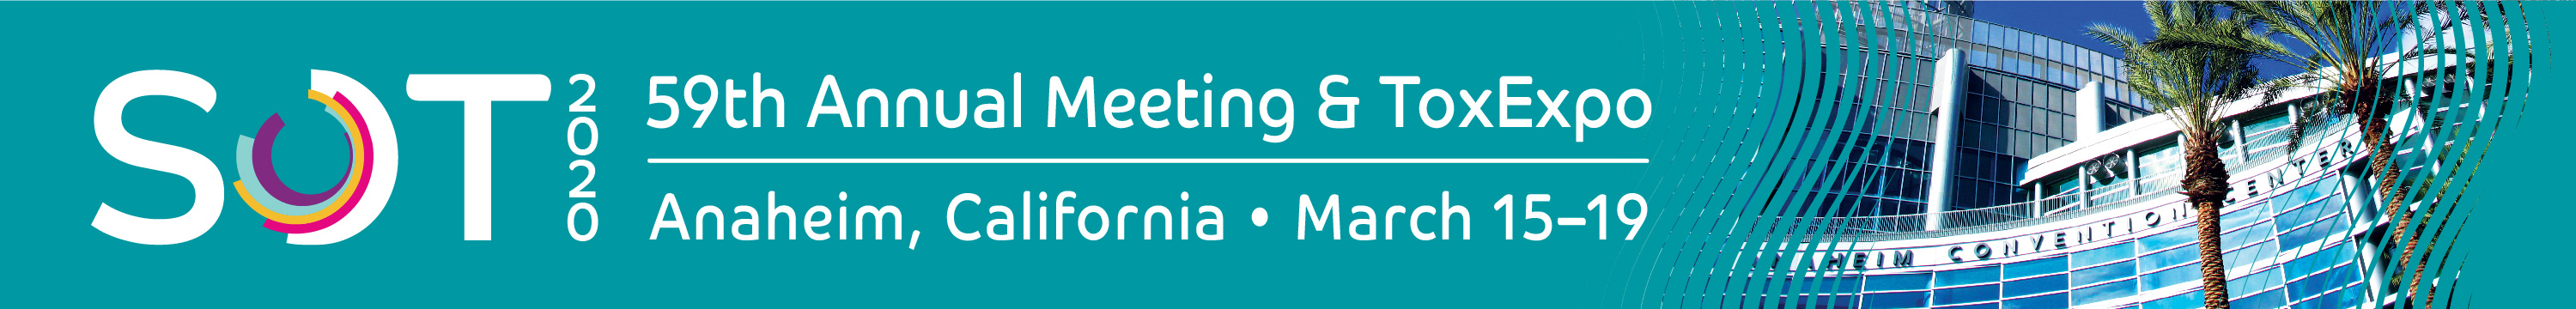 SOT 2020 - 59th Annual Meeting & ToxExpo - Anaheim, California - March 15-19